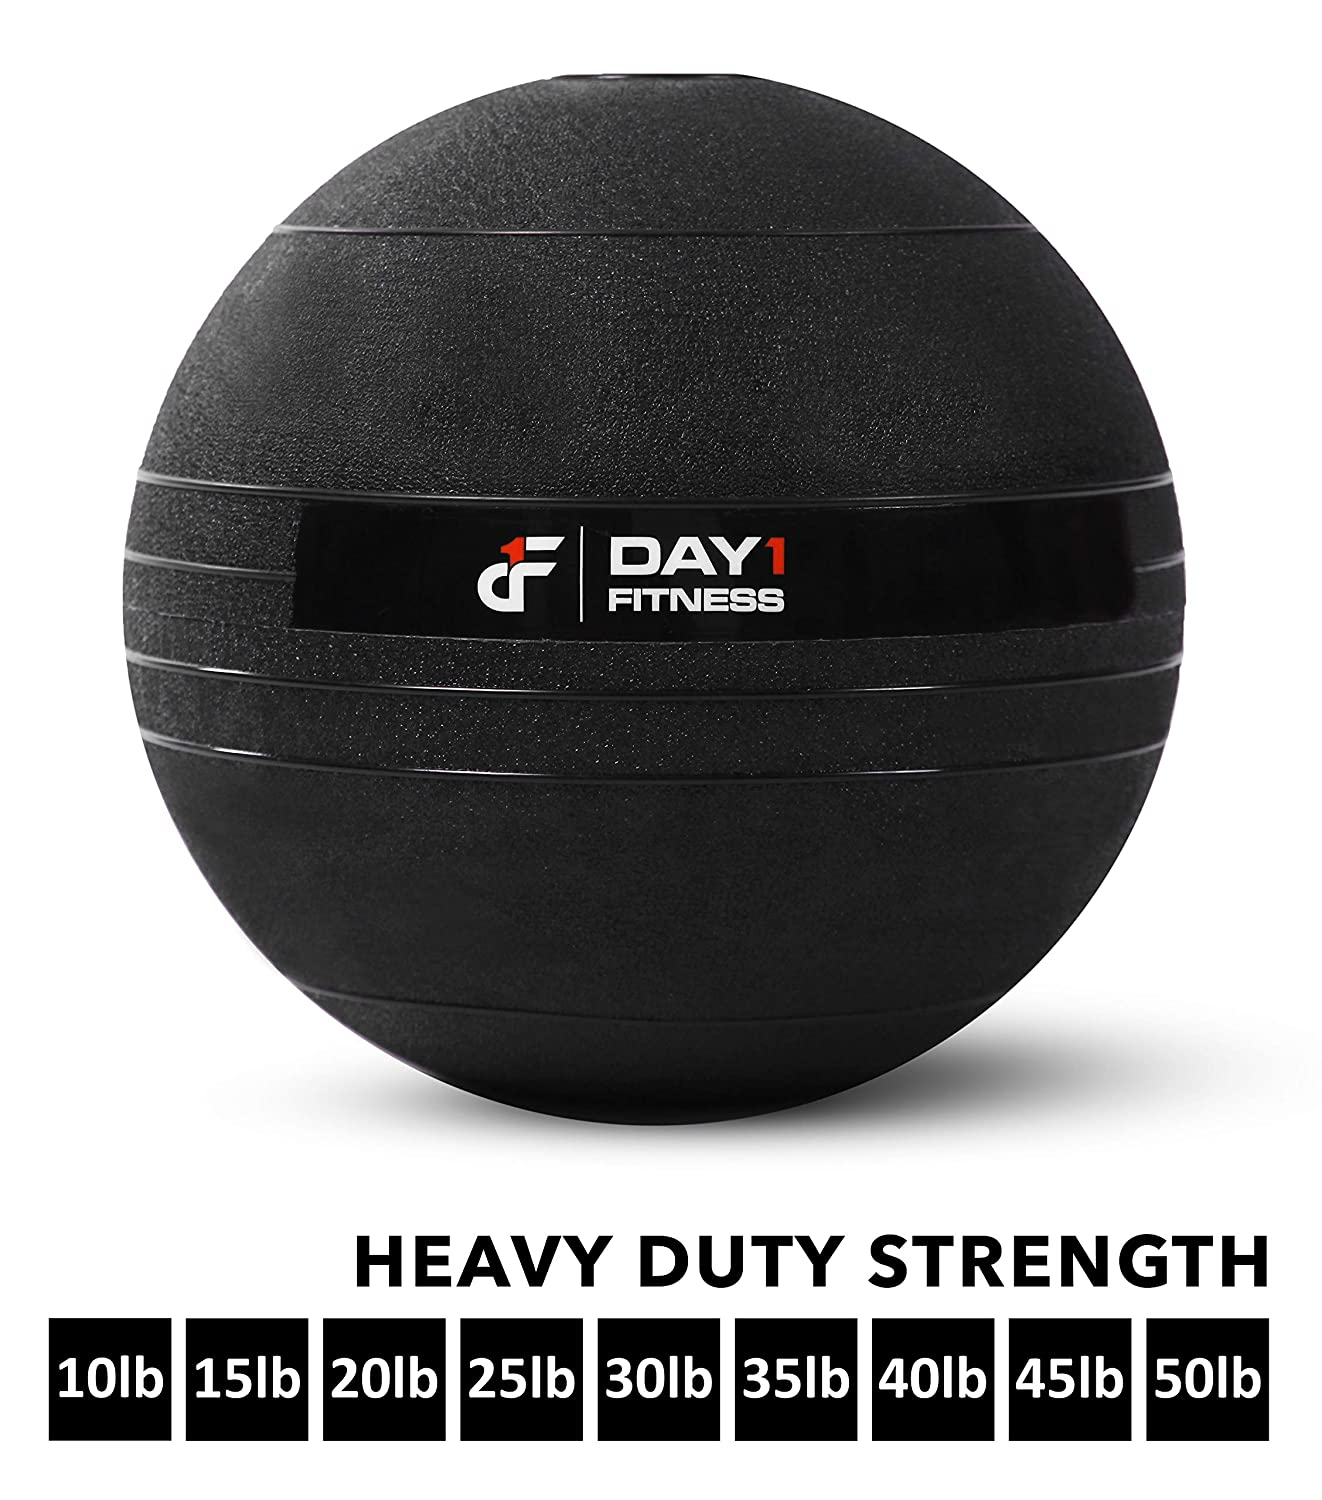 Weighted Slam Ball by Day 1 Fitness 9 Sizes Available, 10-50 Pounds – No Bounce Medicine Ball – Gym Equipment Accessories for High Intensity Exercise, Functional Strength Training, Cardio, CrossFit